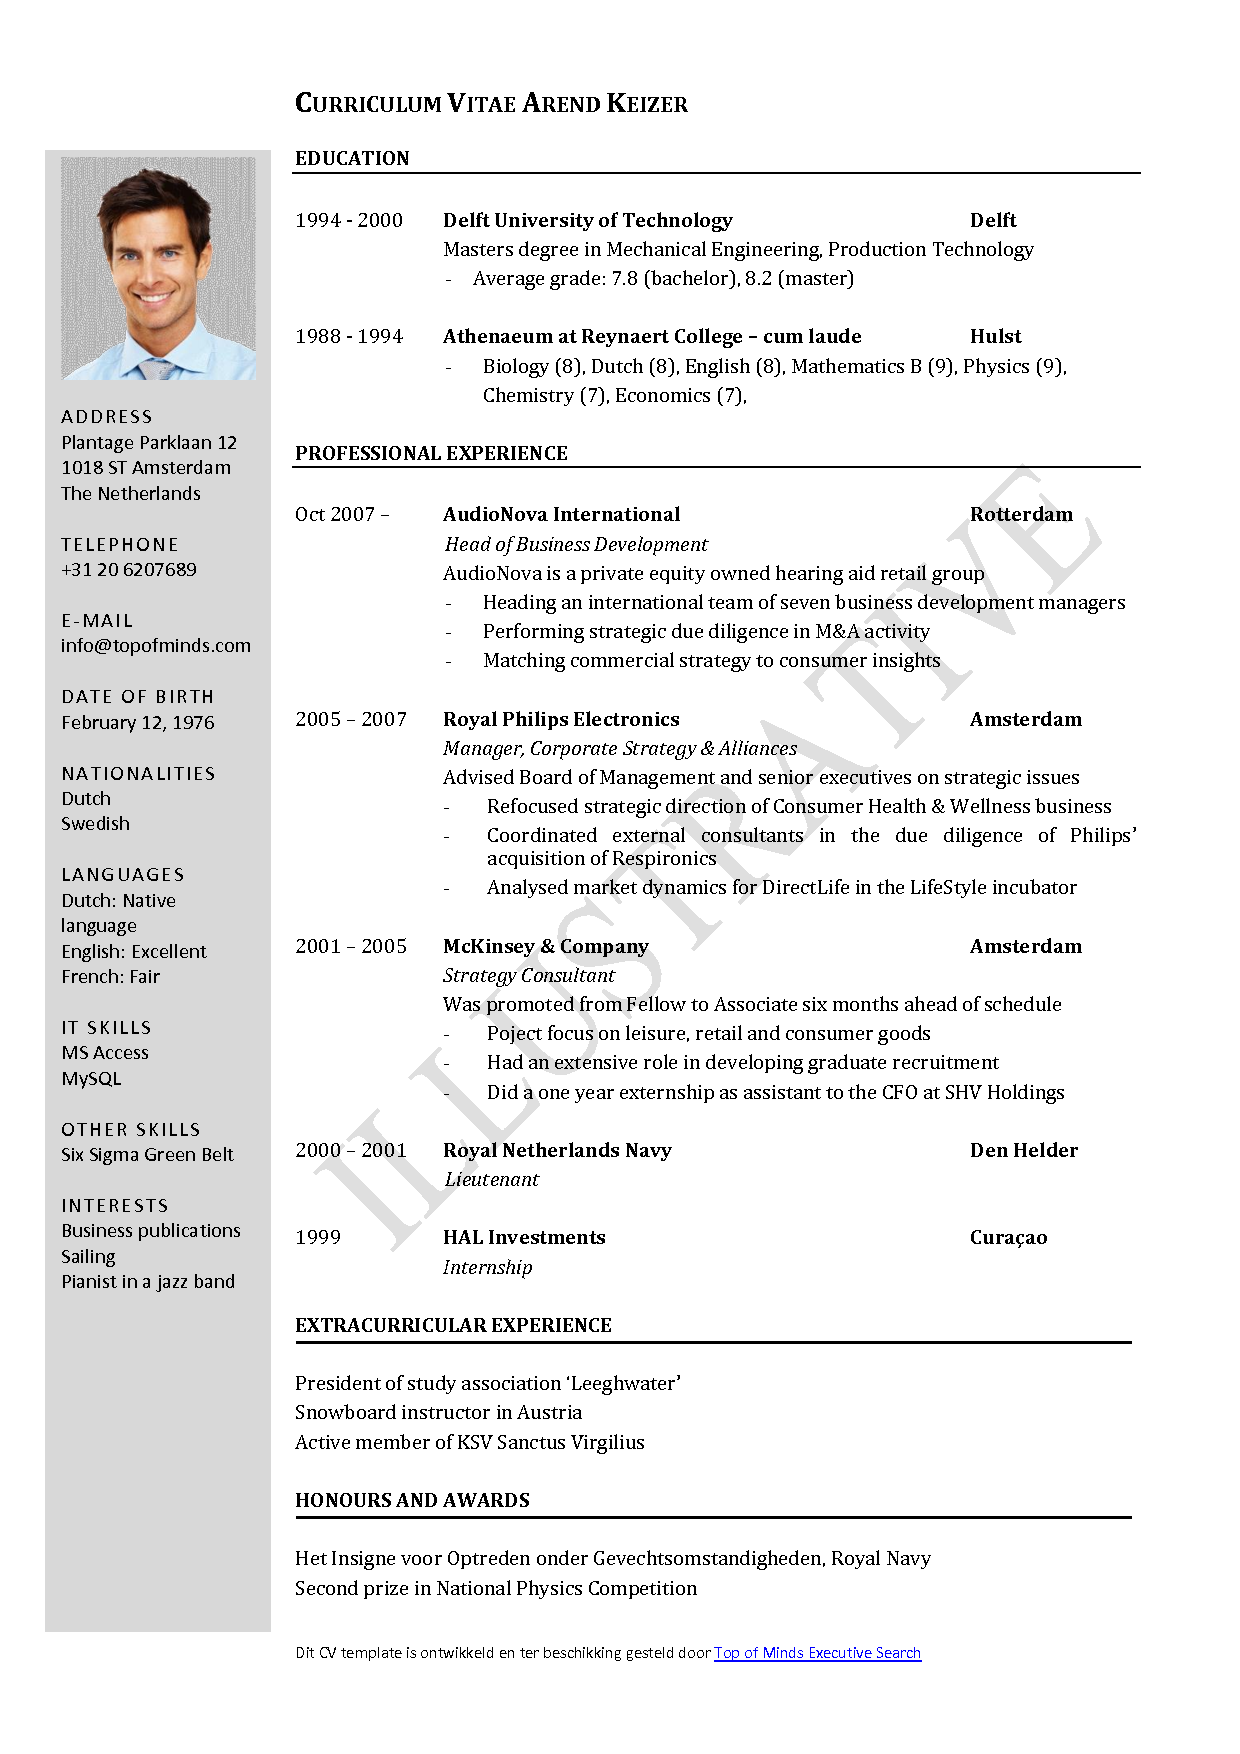 Curriculum Vitae Downloads Sivan Mydearest Co